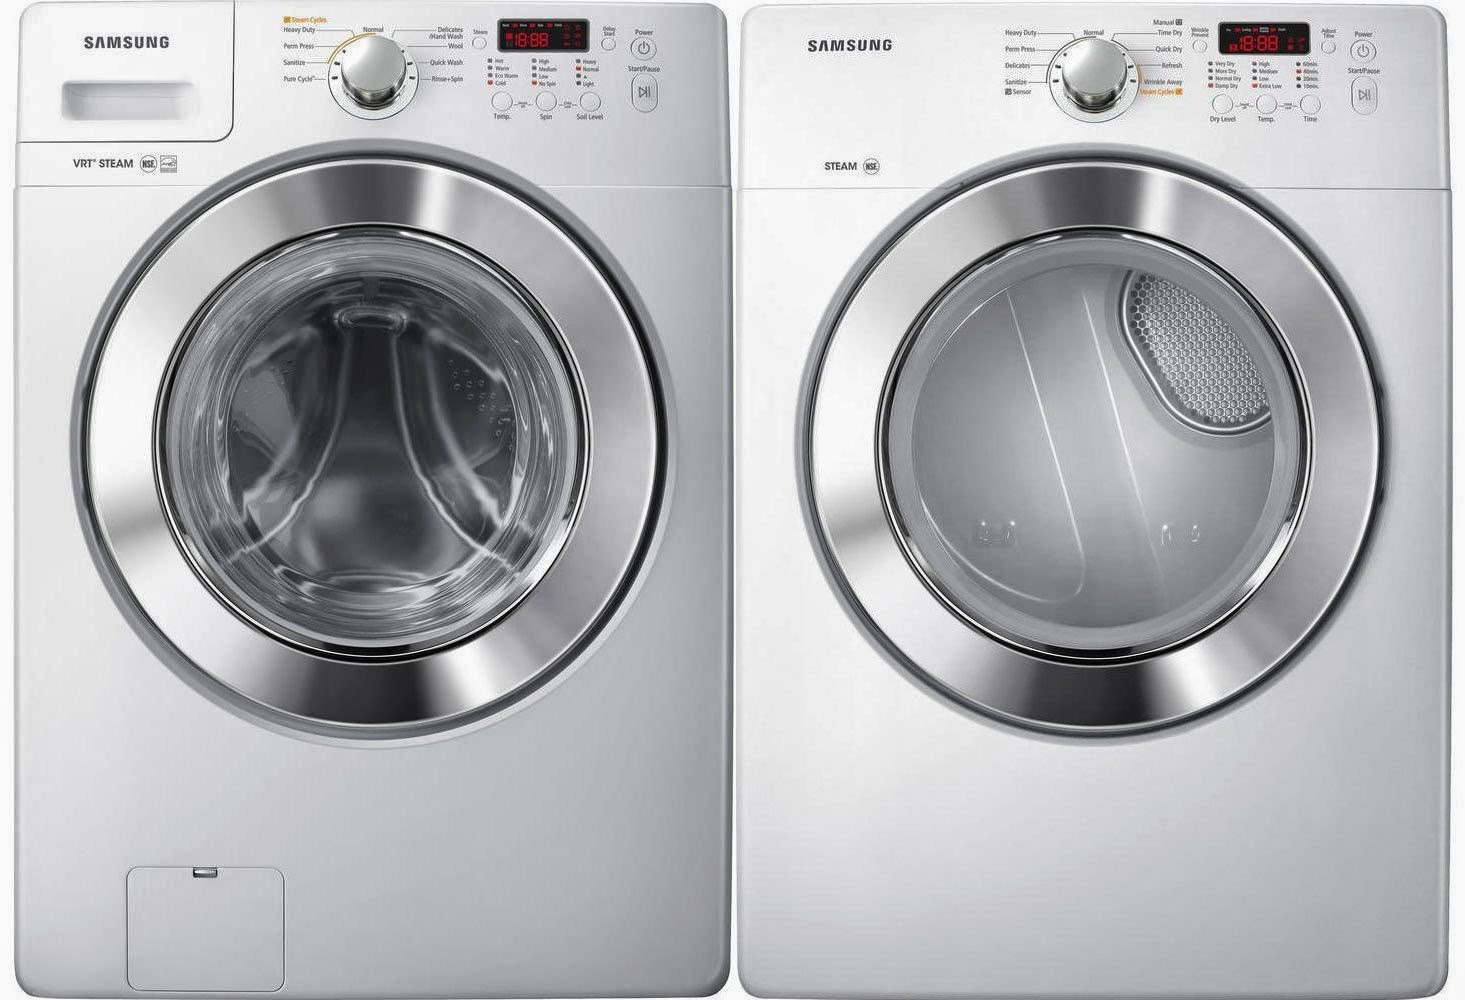 samsung front load laundry set with vrt plus tech and steam